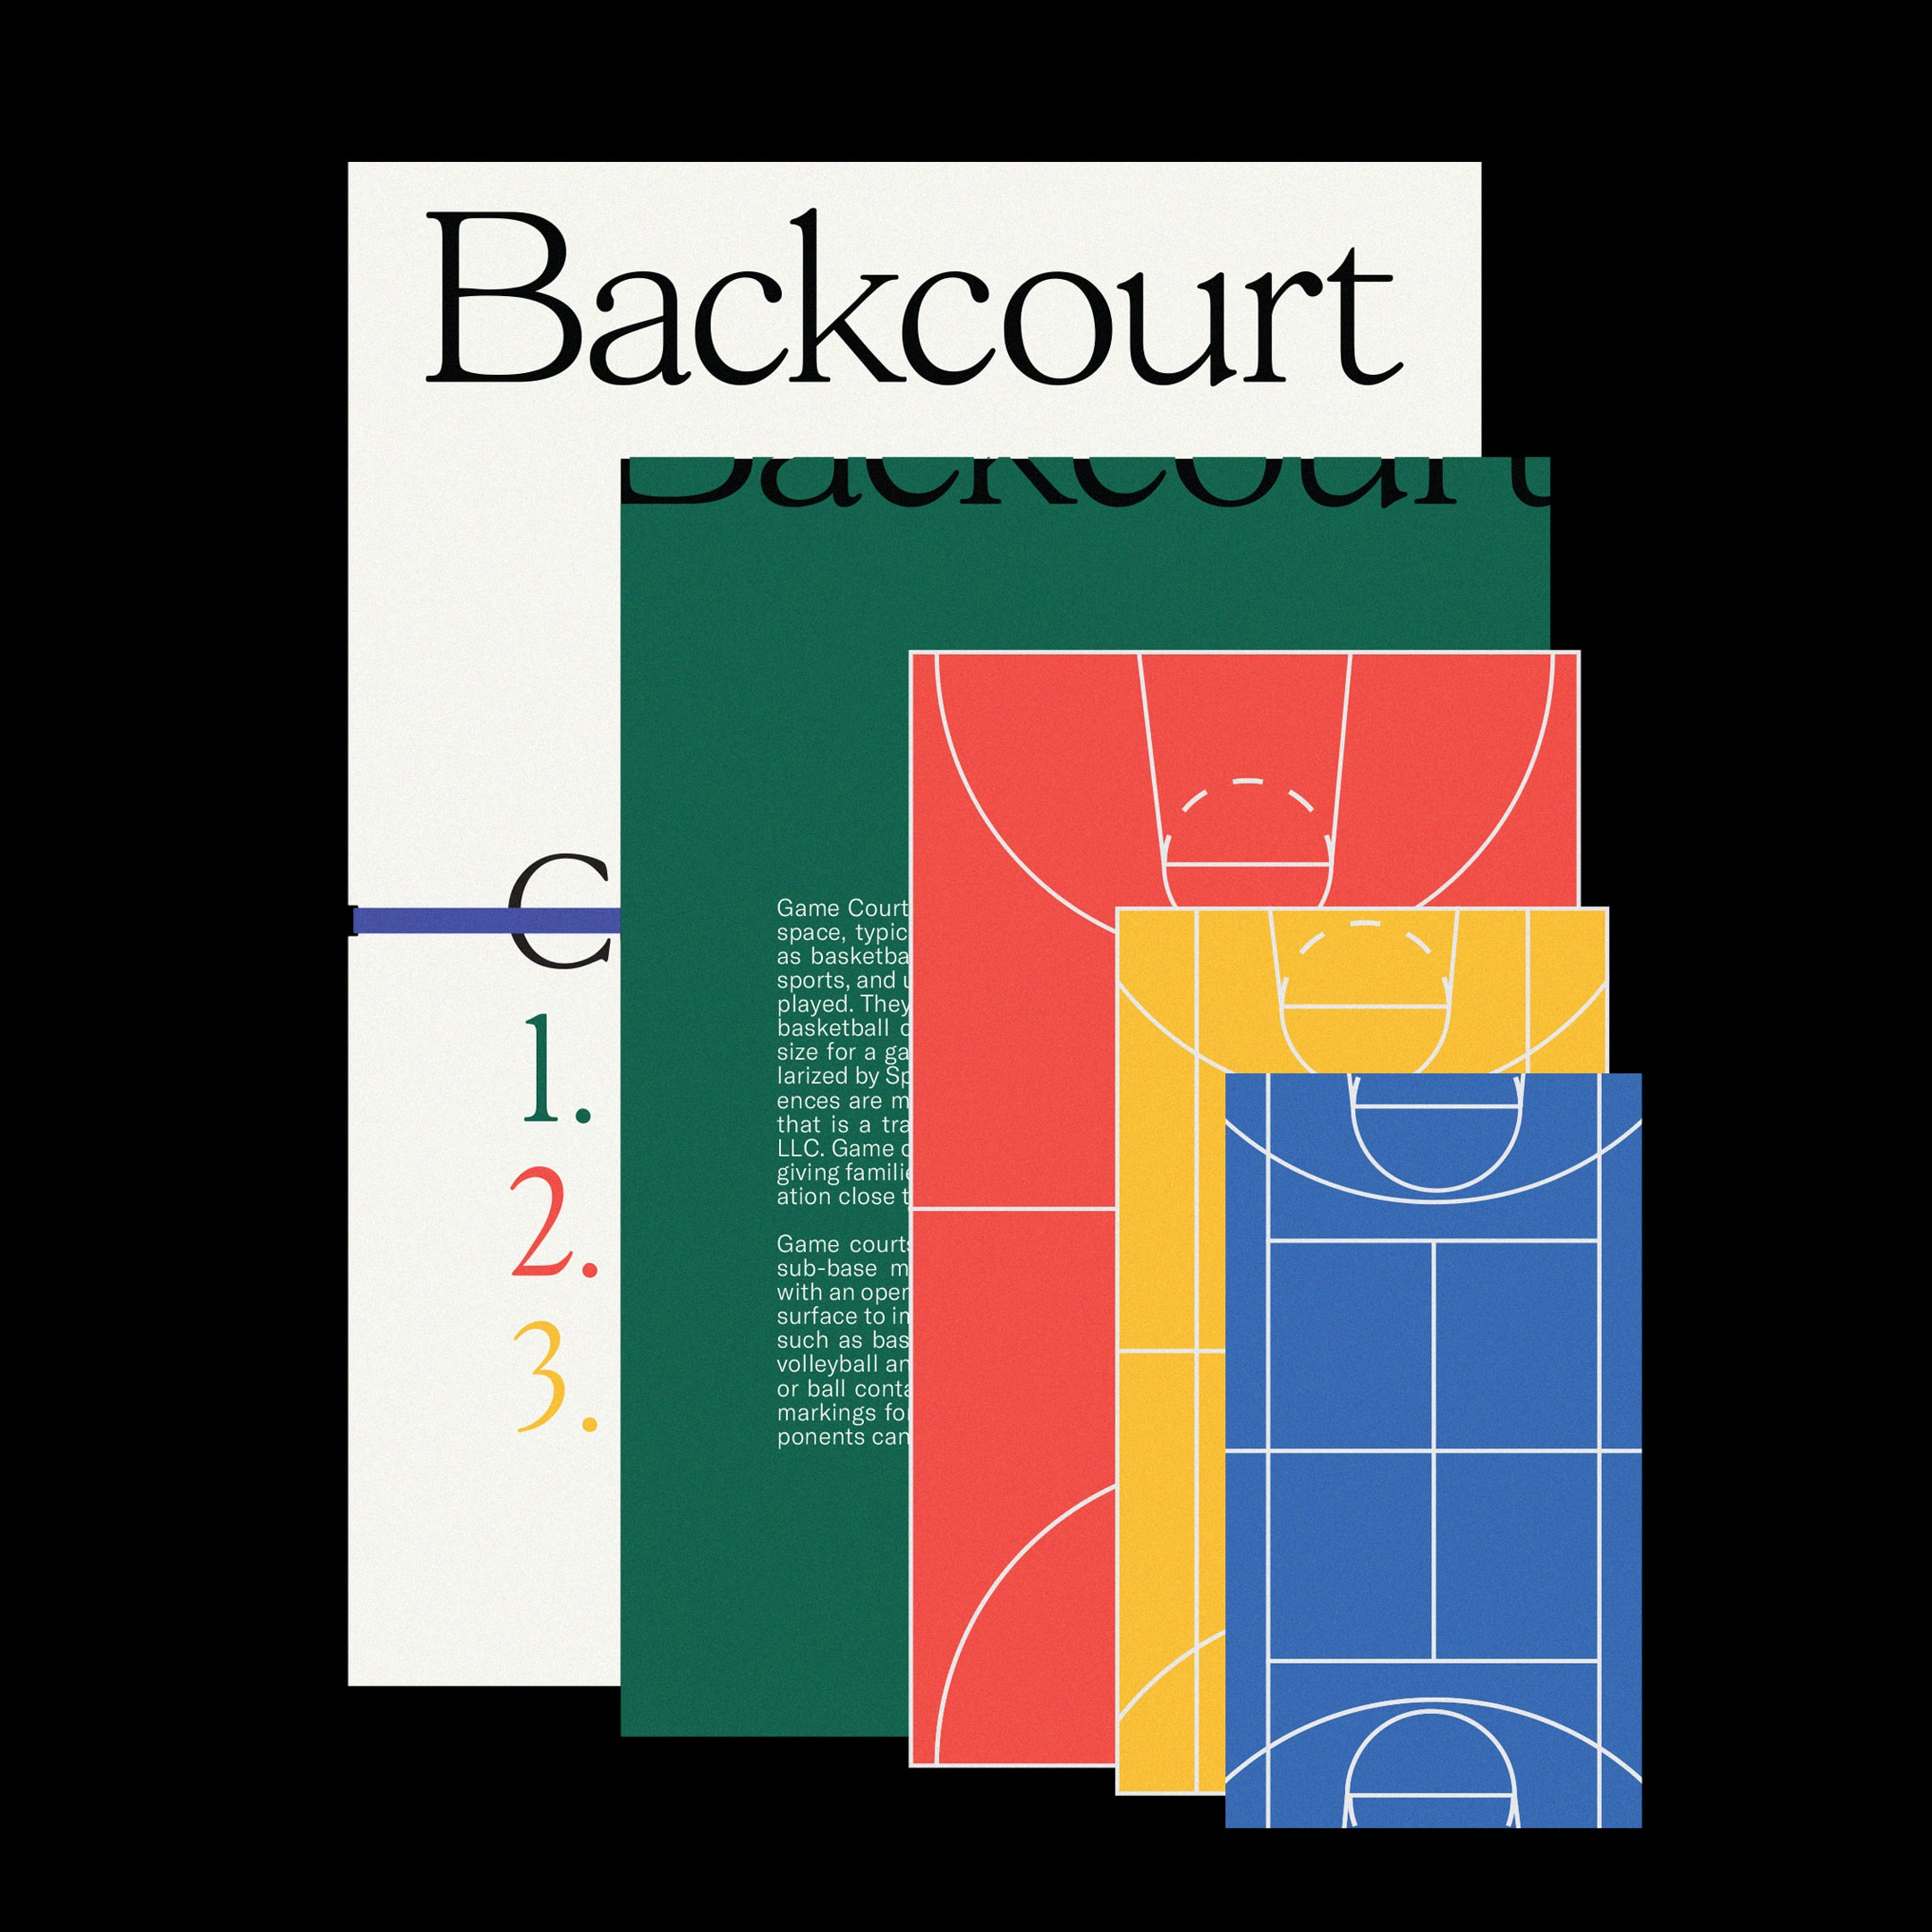 backcourtcomposit-min